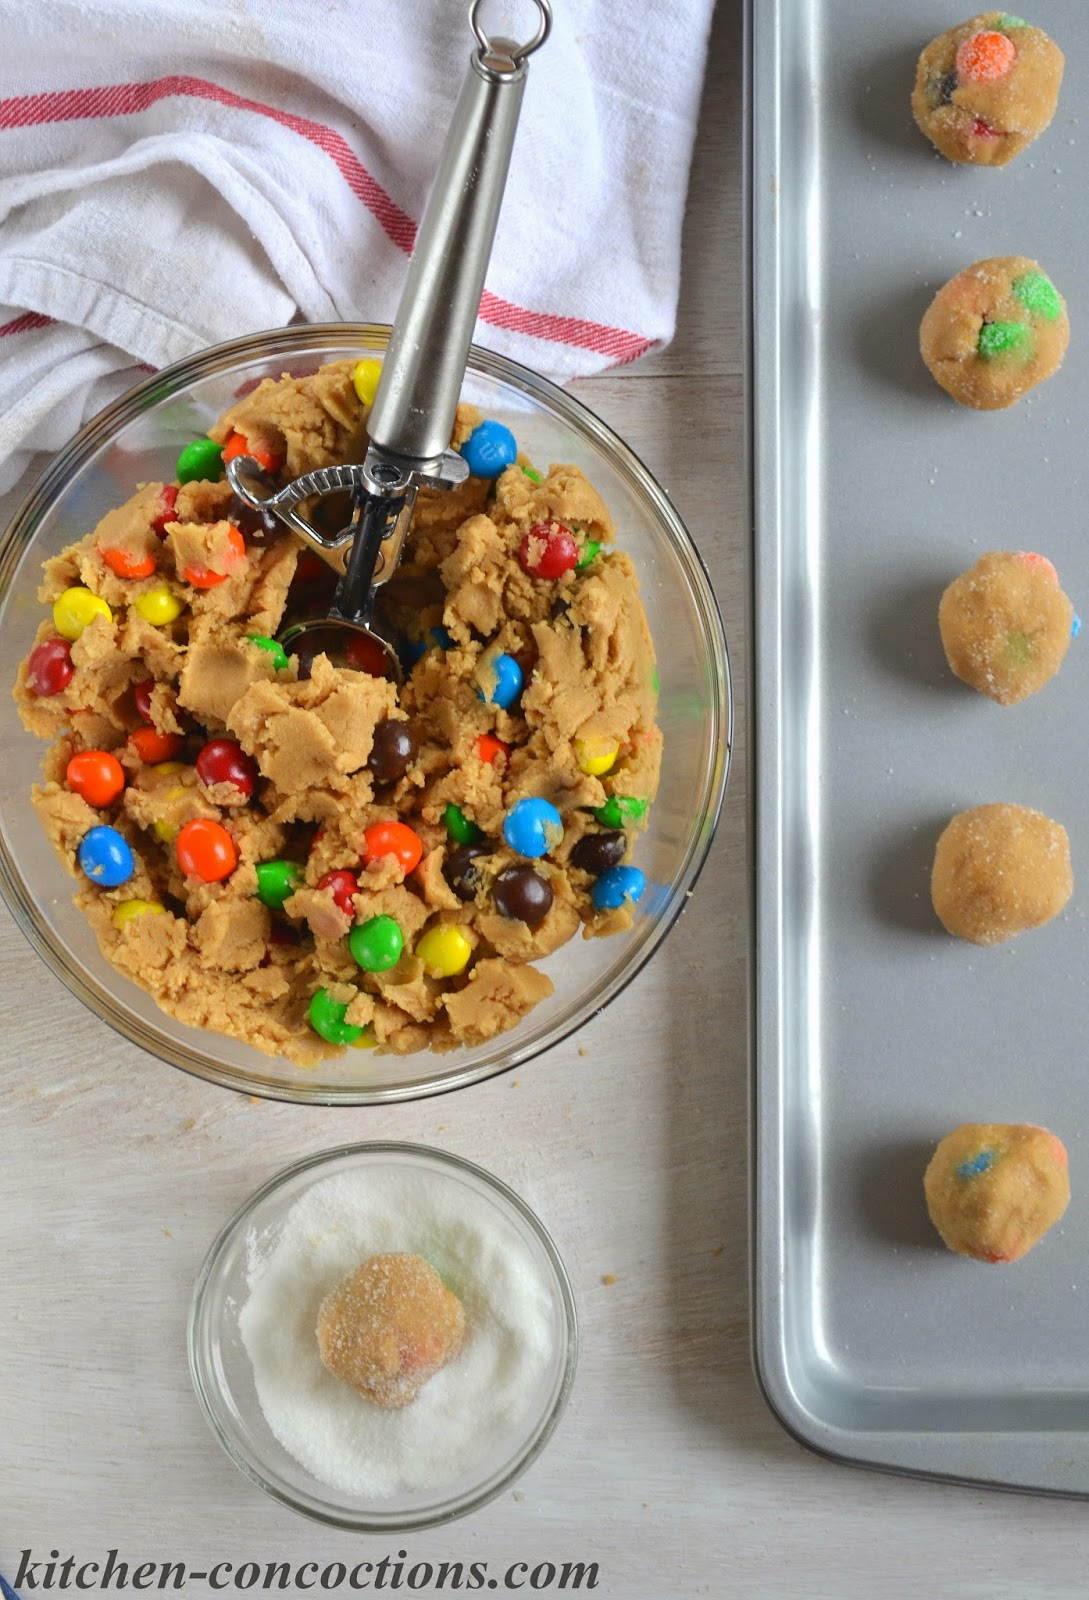 Peanut Butter M&M's® Cookies {Plus Four Tips for a Fun